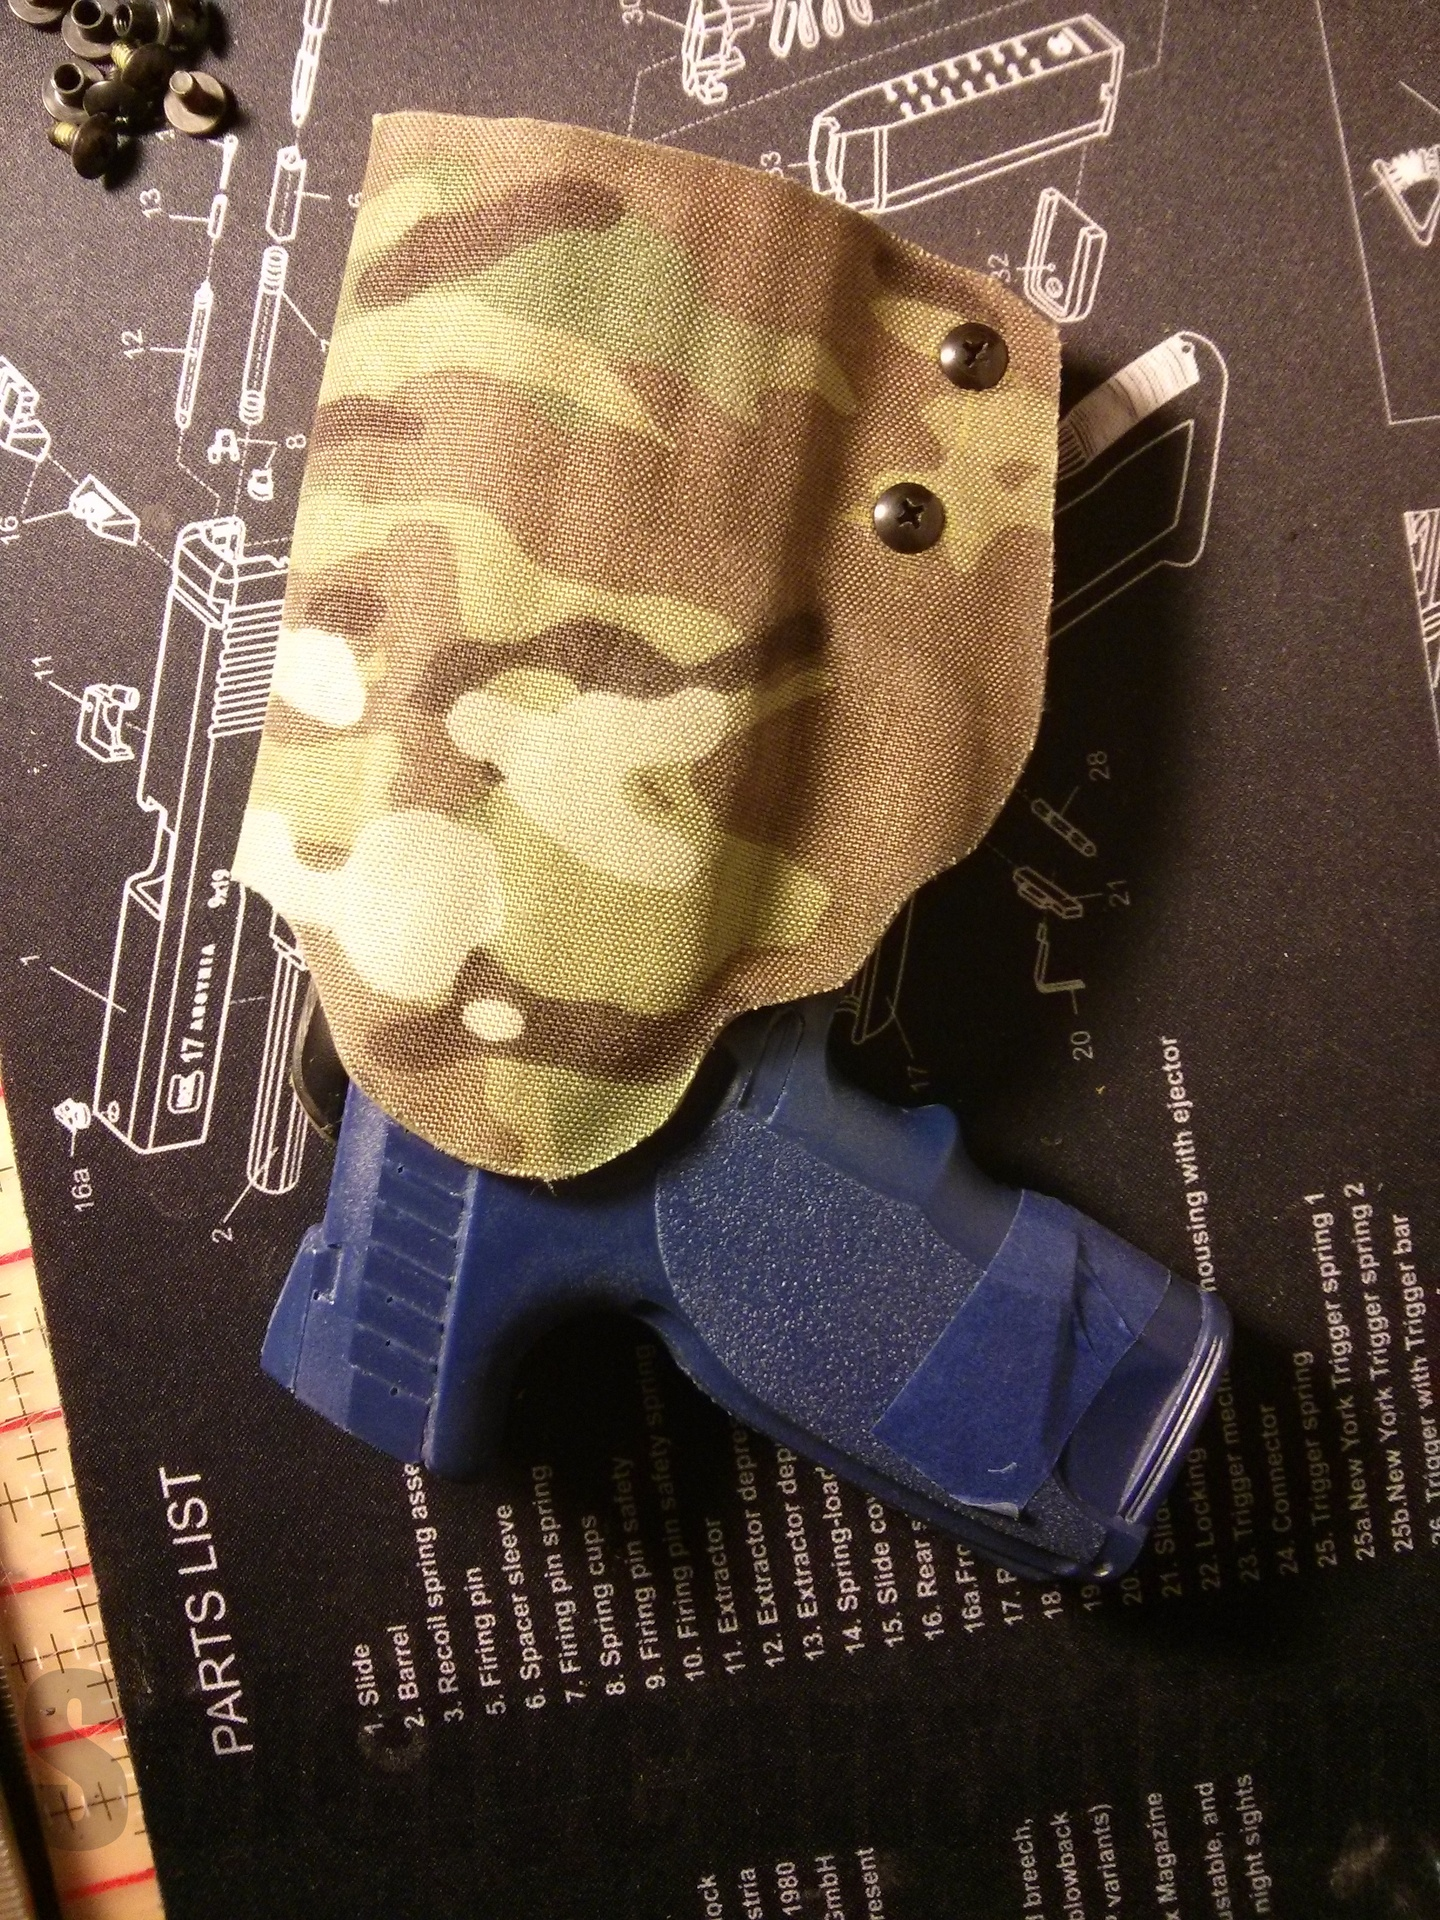 Solely Canadian - Suede/Fabric Holsters